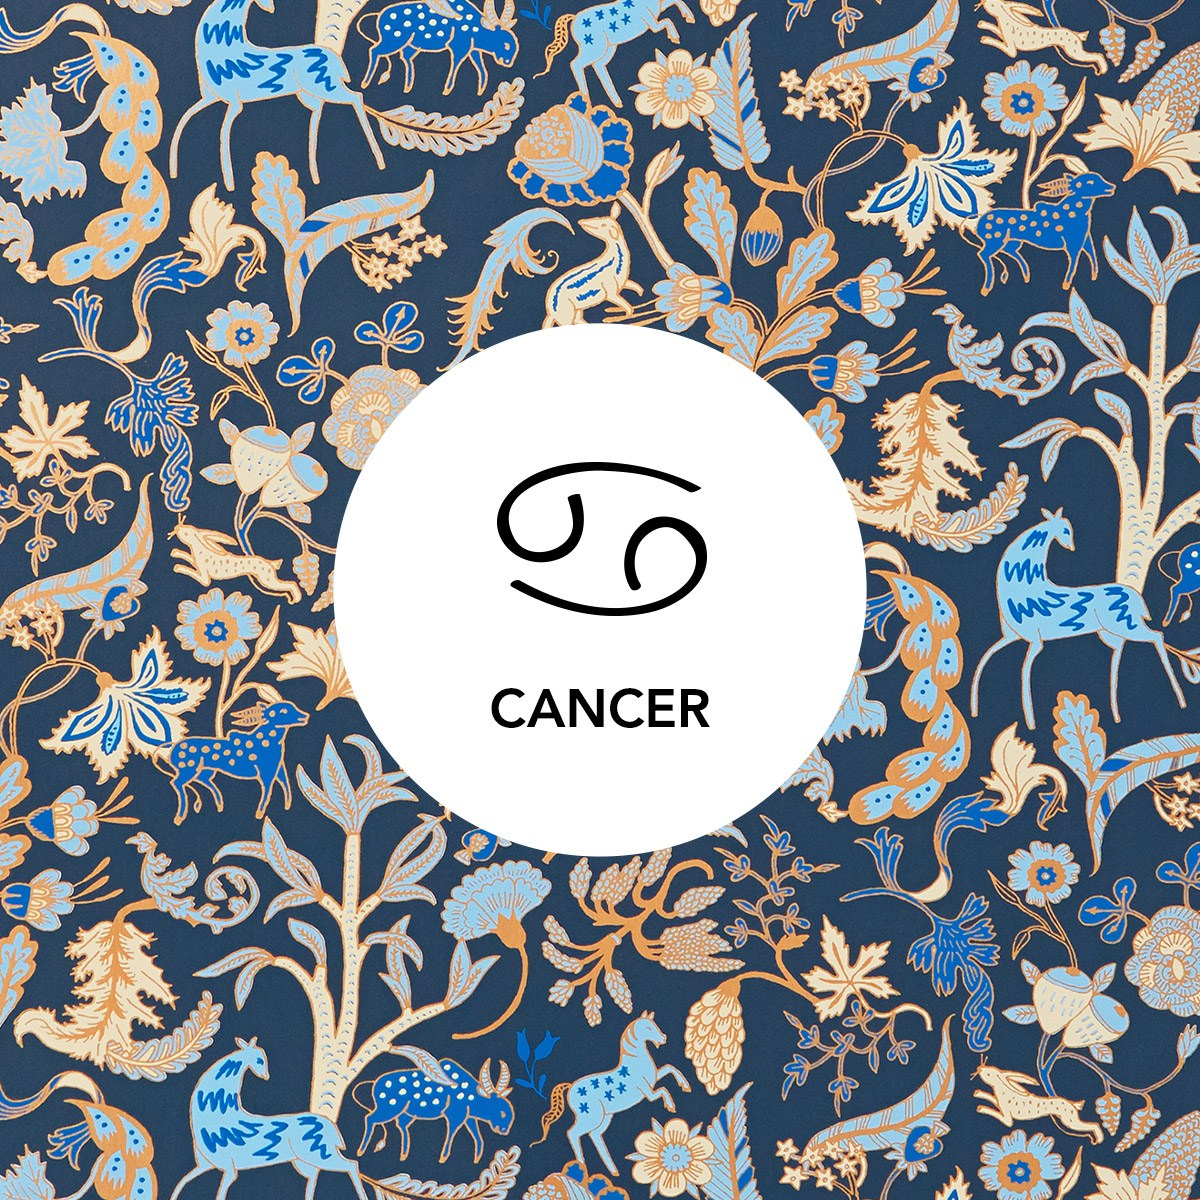 Cancer | Foret Midnight wallpaper | Julia Rothman | Hygge & West